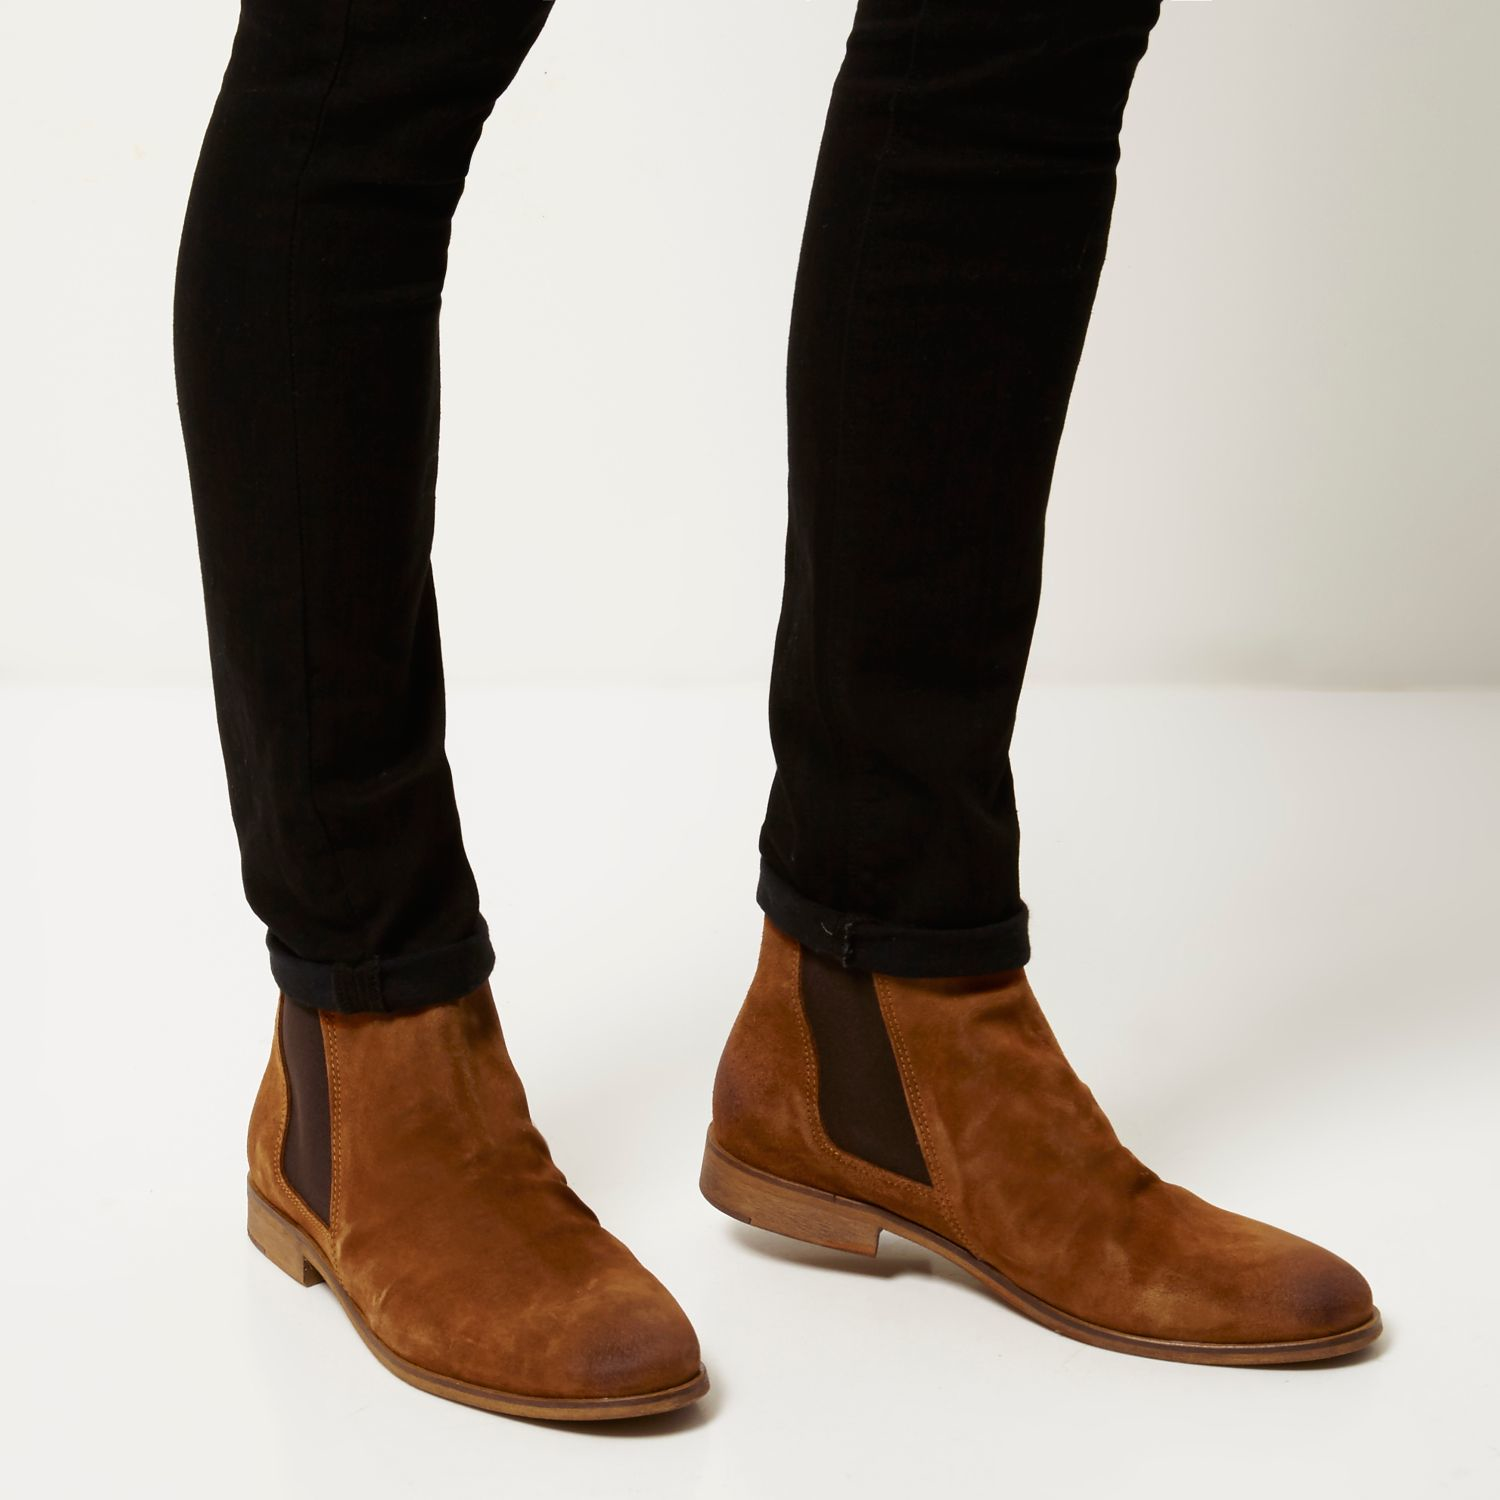 Mens Black western style leather boots River Island Clearance Manchester Great Sale Get Online Sneakernews Cheap Price HkqvC